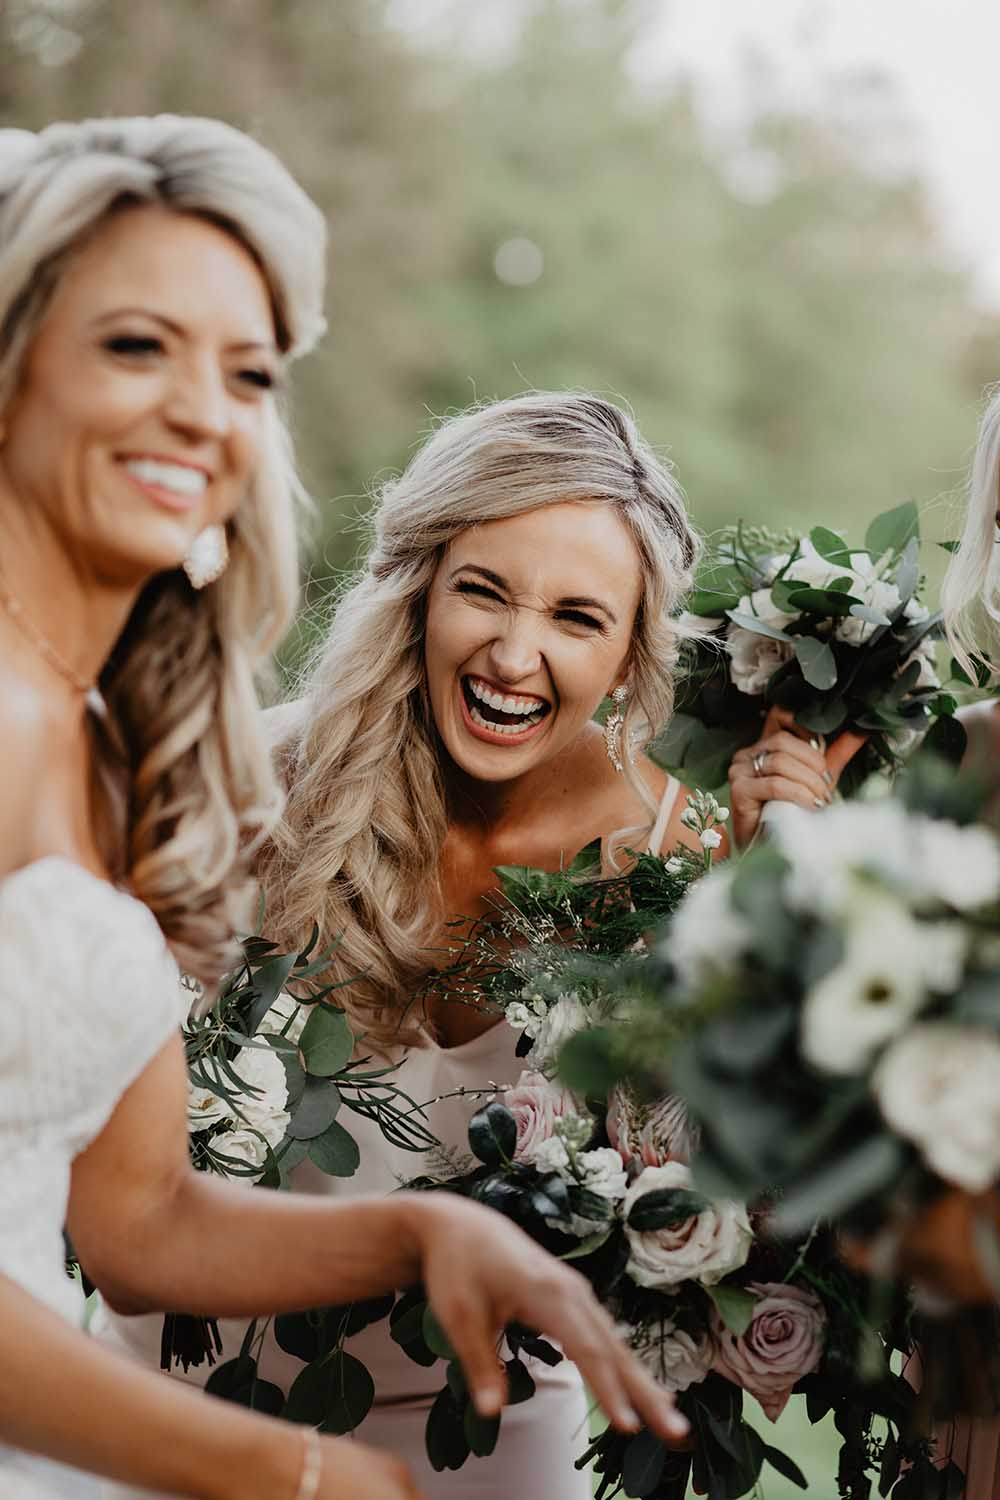 Bride & Bridesmaids Laughing Pose | photo by Emily Green Photography | featured on I Do Y'all